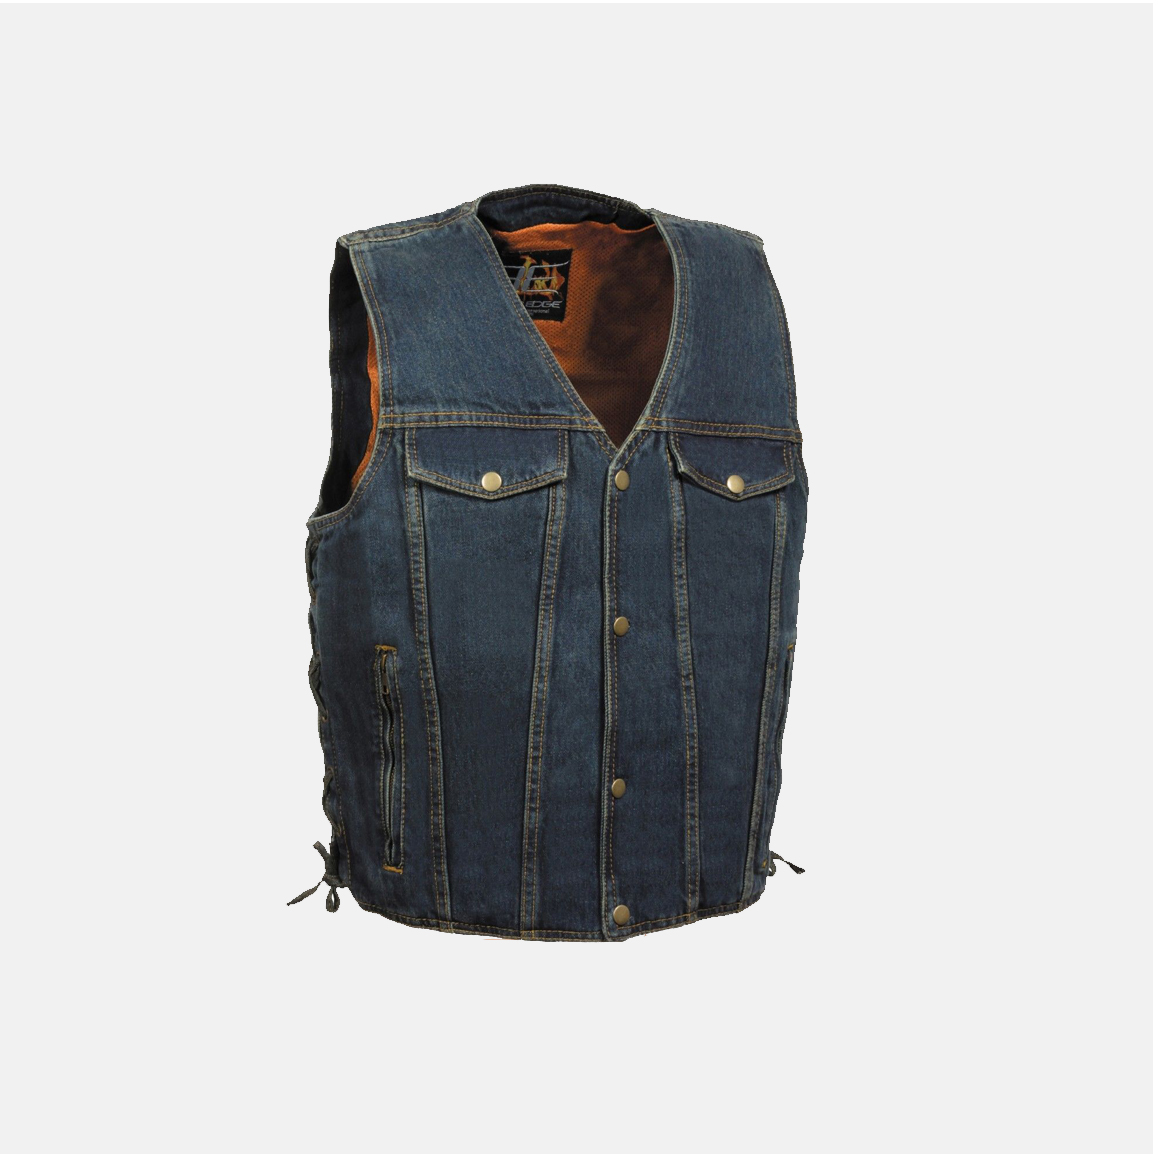 You searched for: denim vest! Etsy is the home to thousands of handmade, vintage, and one-of-a-kind products and gifts related to your search. No matter what you're looking for or where you are in the world, our global marketplace of sellers can help you find unique and affordable options. Let's get started!